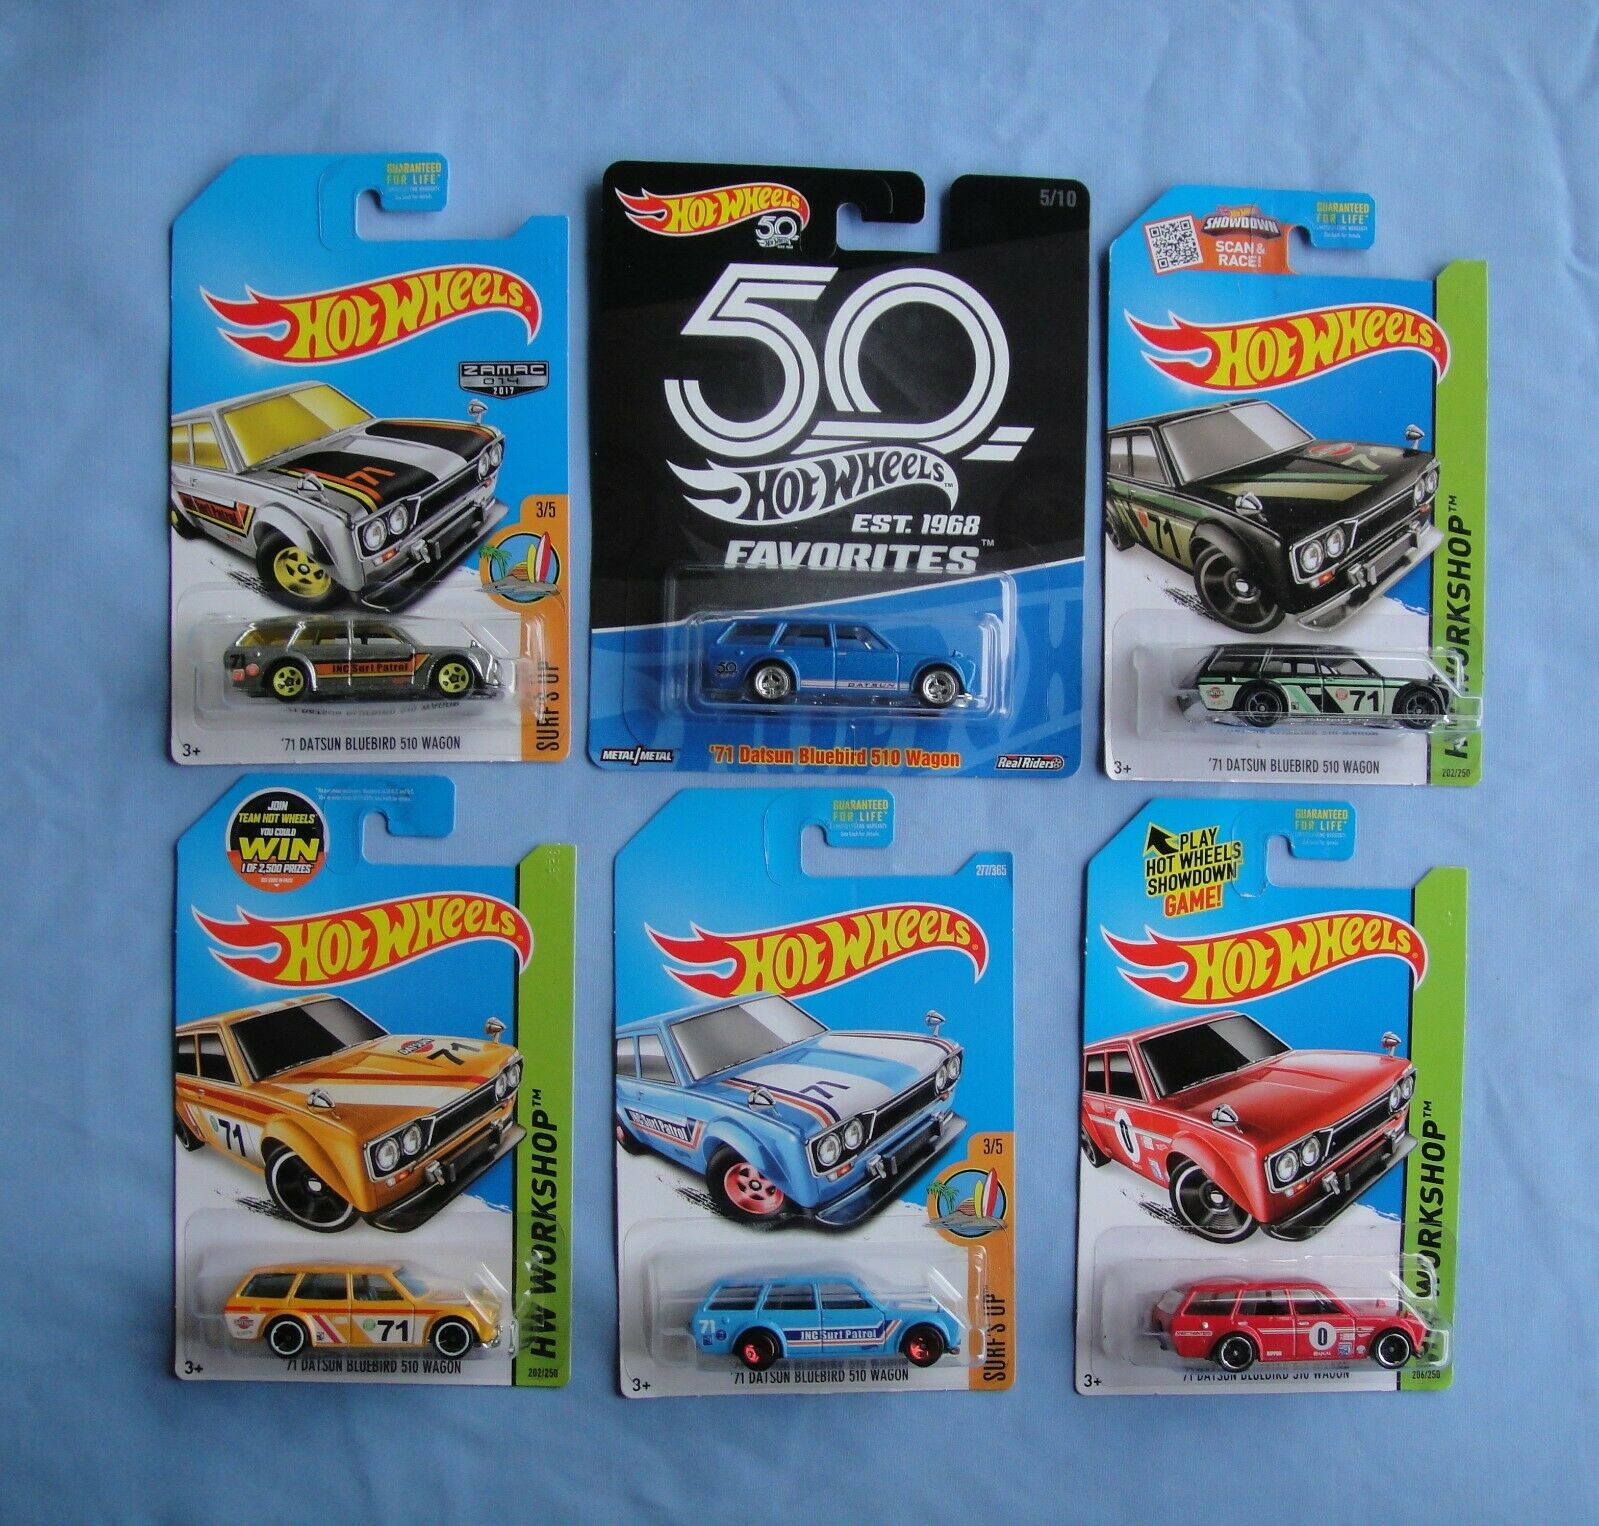 Hot Wheels Datsun Blaubird 510 Wagon Walmart & Kmart Exclusives Lot Of 6 Cars